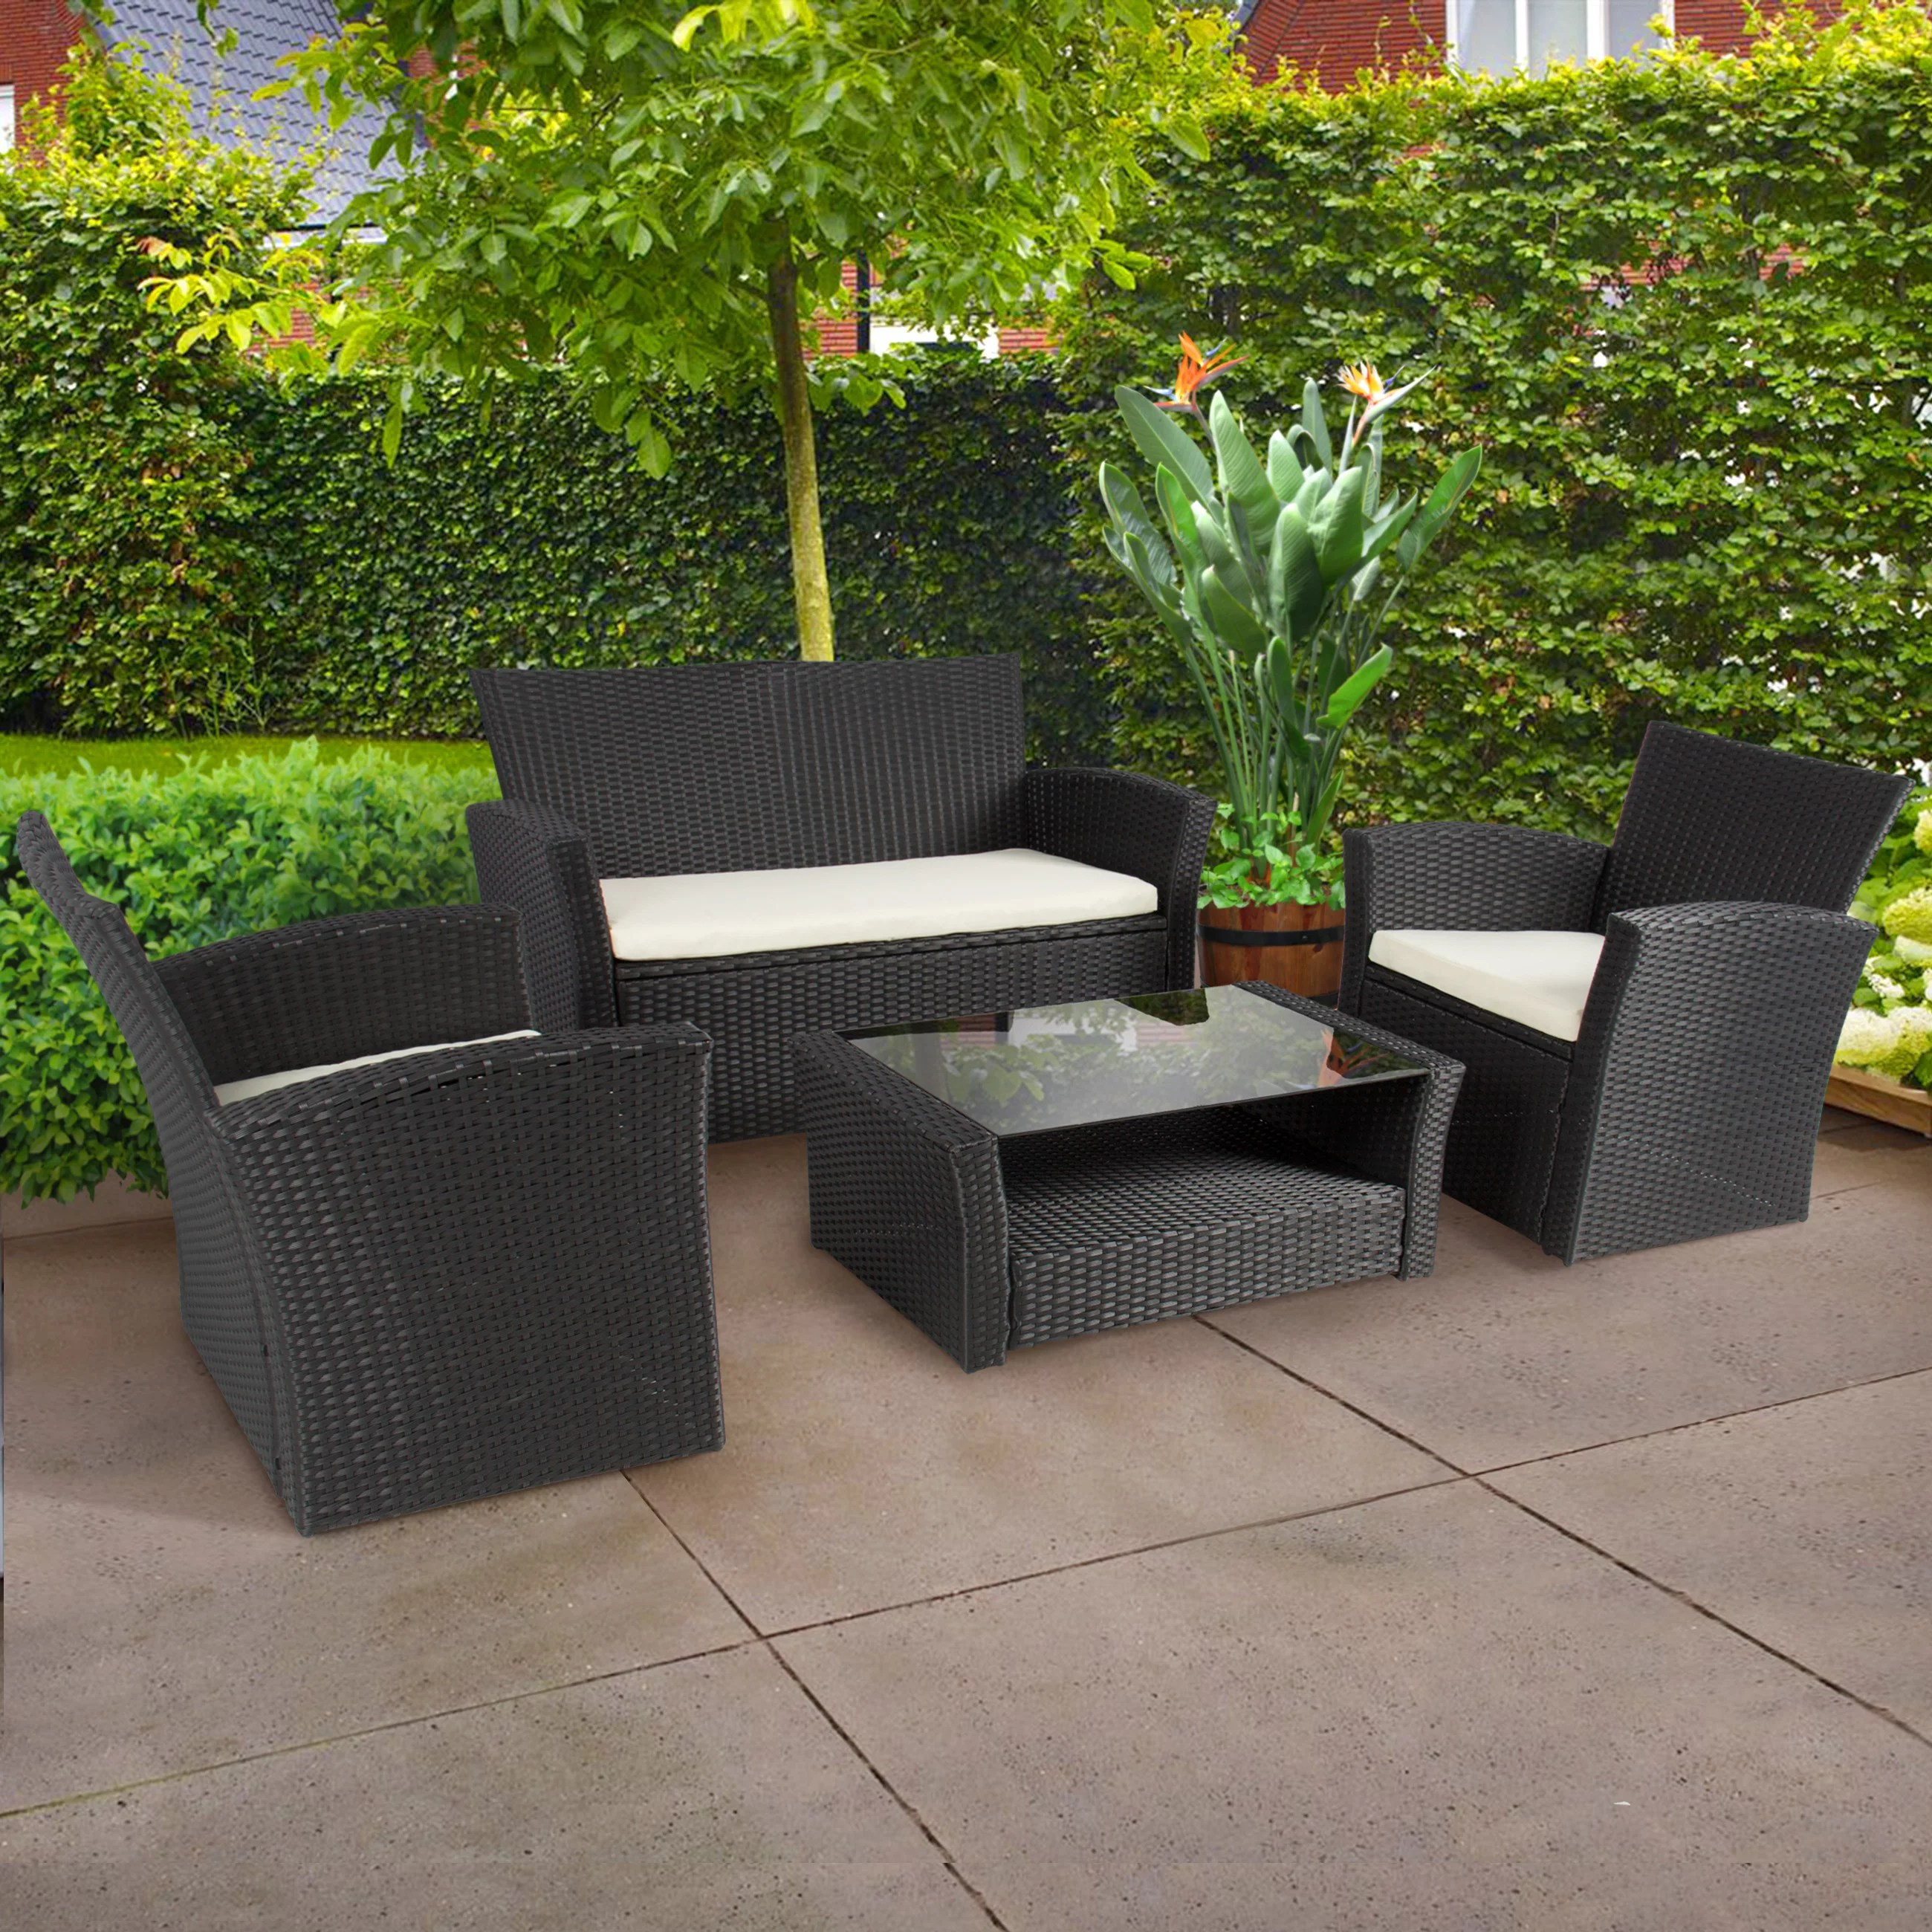 Garden Furniture Corner Sofa Ebay Best Choice Products 4pc Outdoor Patio Garden Furniture Wicker Rattan Sofa Set Black